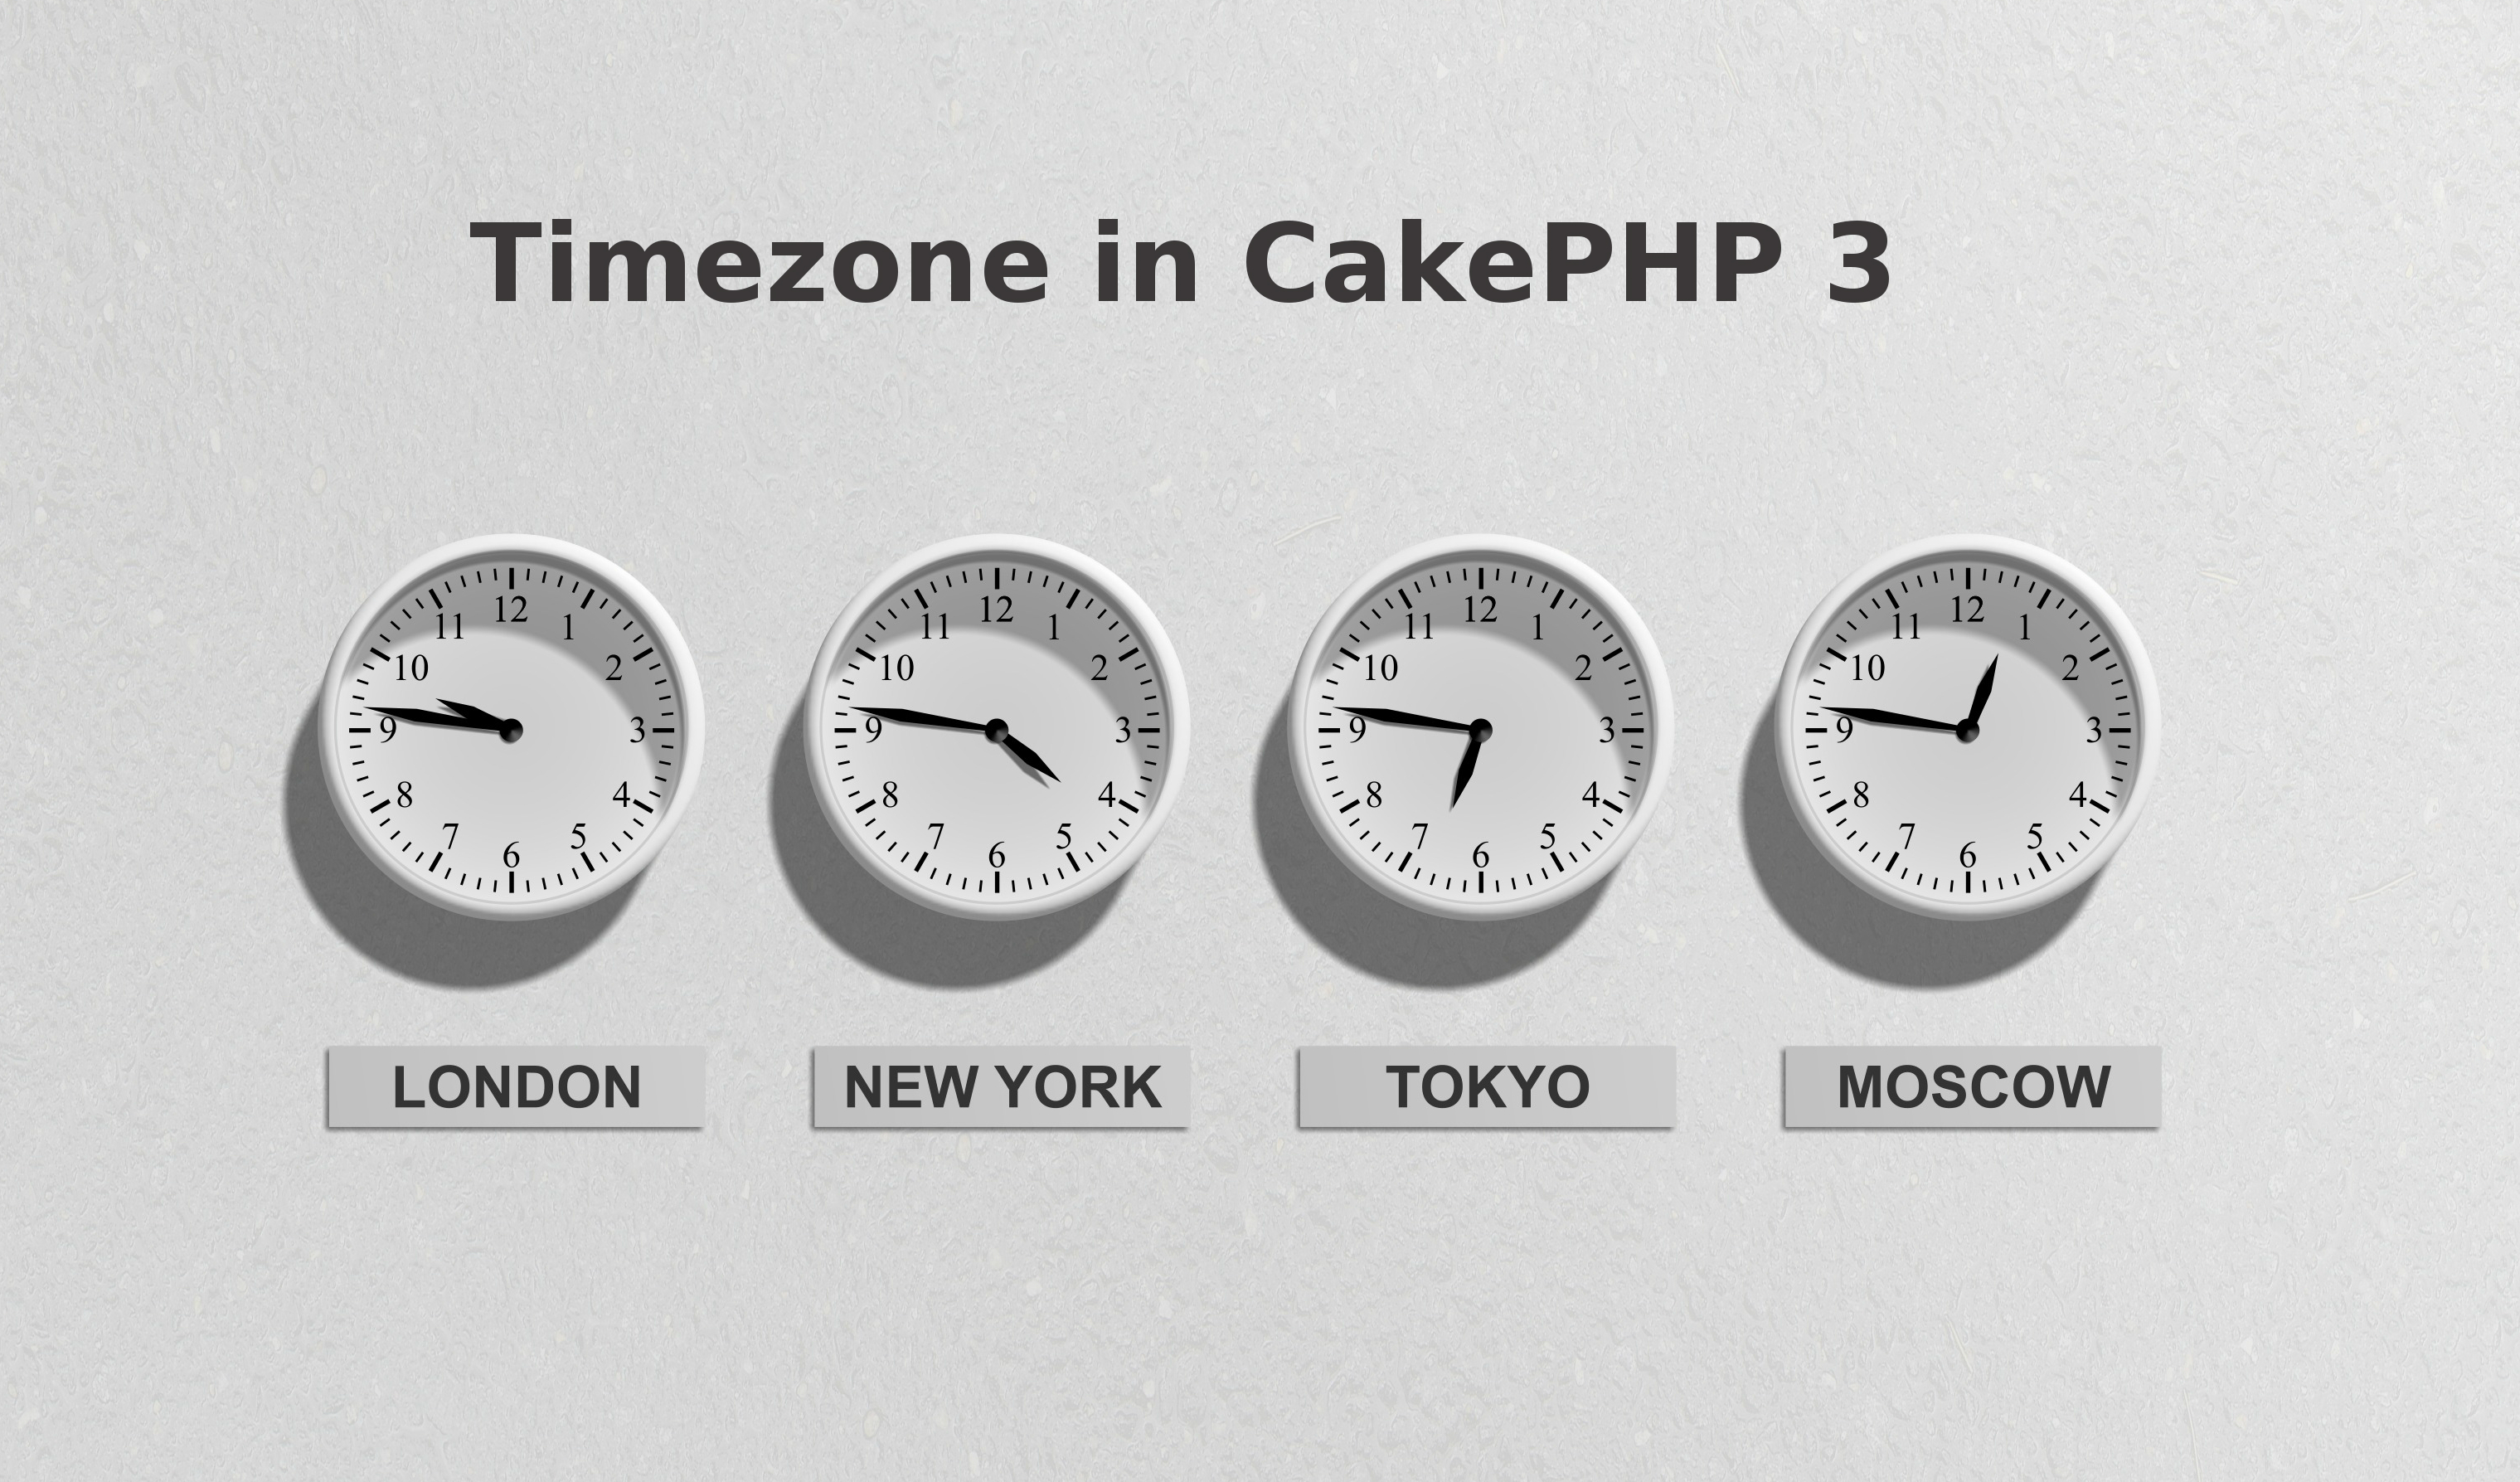 How to Set Timezone in CakePHP 3?